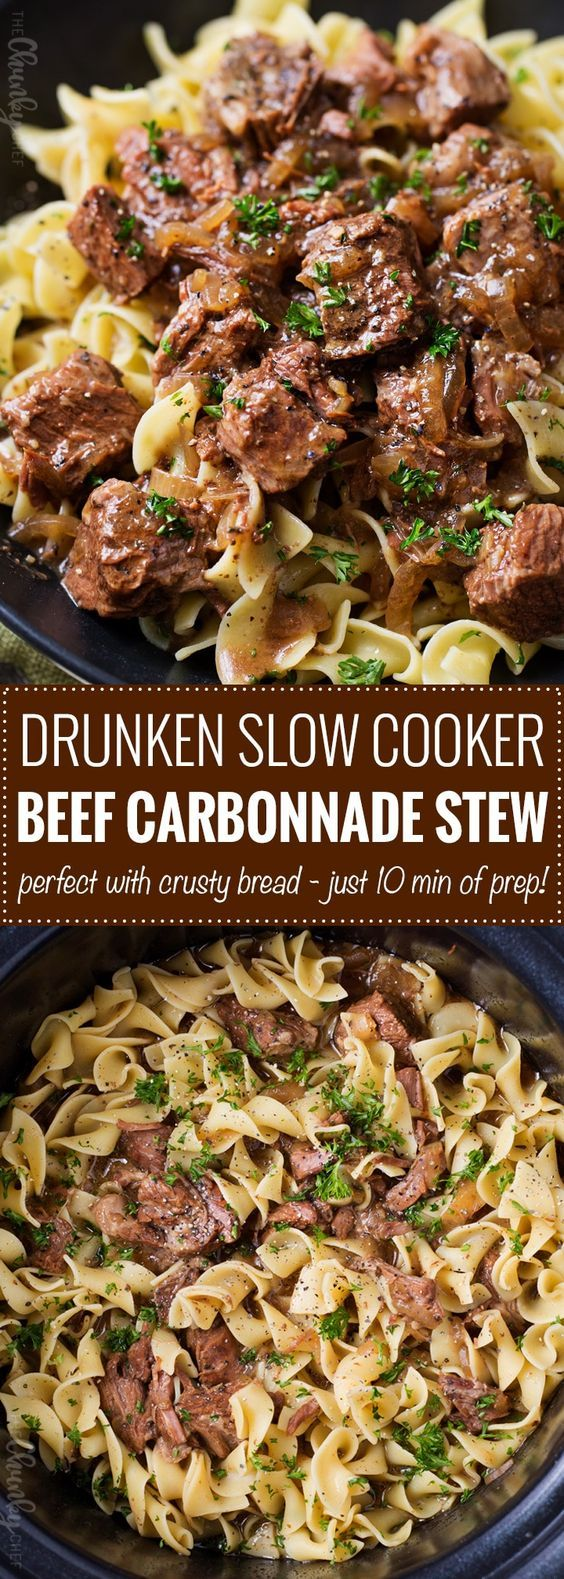 Drunken Slow Cooker Beef Stew (Beef Carbonnade) | Belgium comfort food, made easy in the slow cooker! Beef stew made with plenty of sweet onions, herbs and beer... perfect over egg noodles, mashed potatoes, or with a crusty piece of bread! | The Chunky Chef